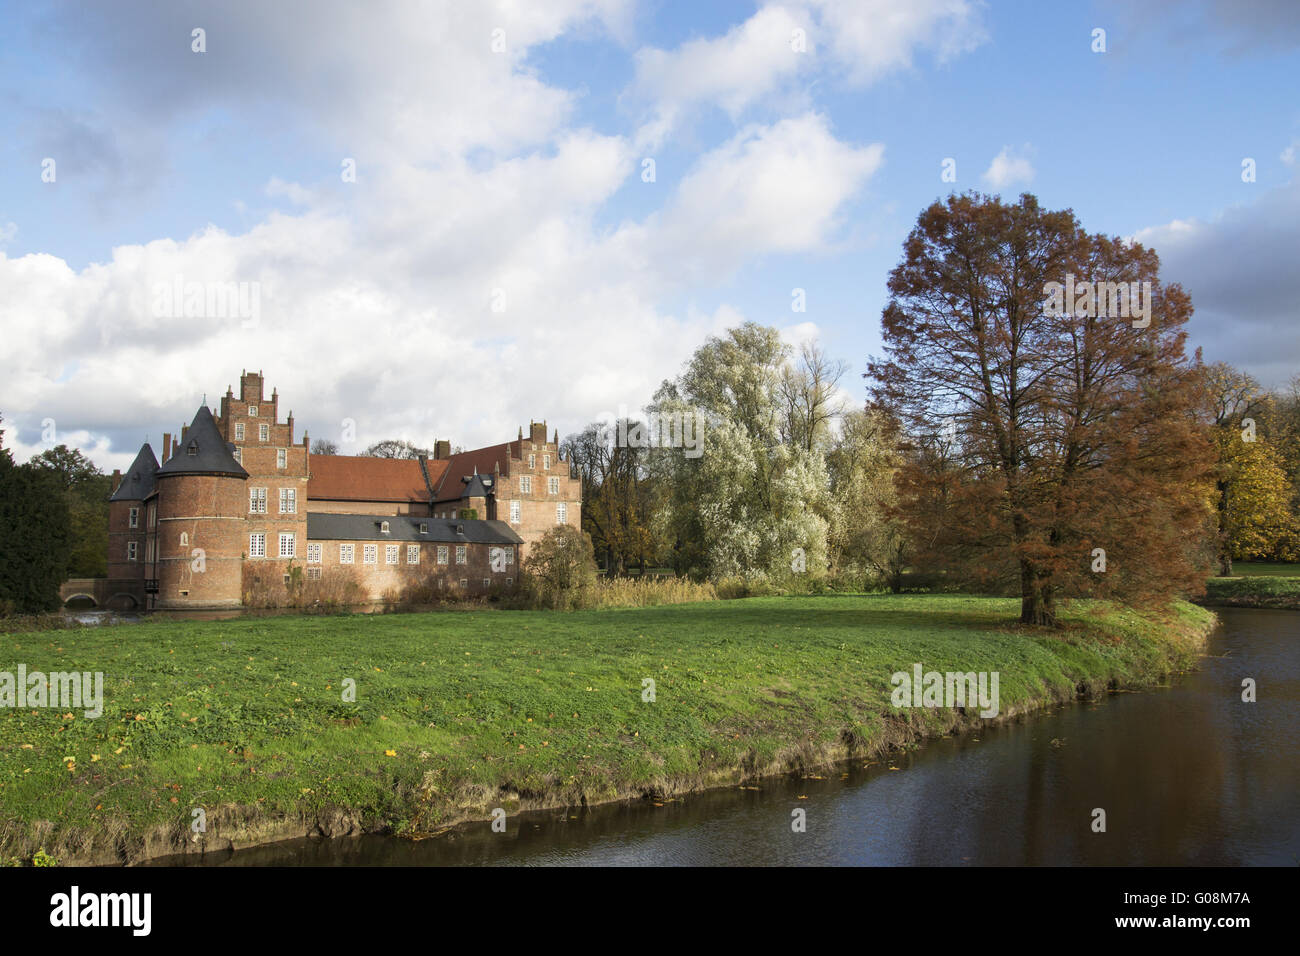 Autumnally atmosphere on the moated castle in Hert Stock Photo